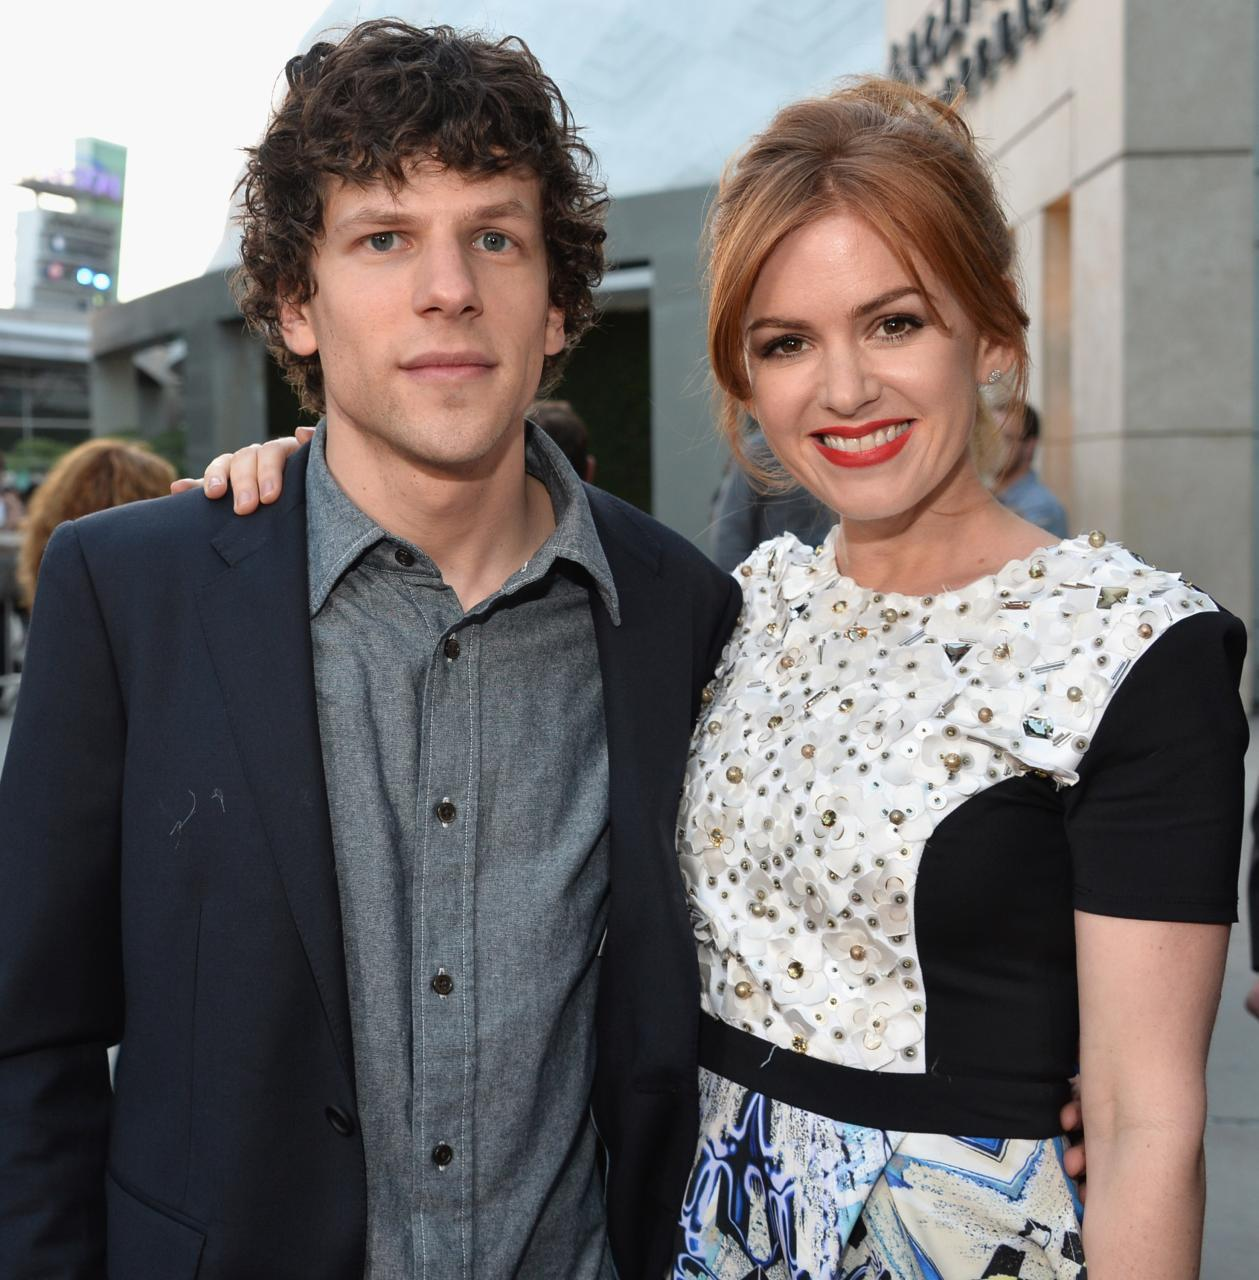 JESSE ESIENBERG AND ISLA FISHER AT A RED CARPET EVENT.